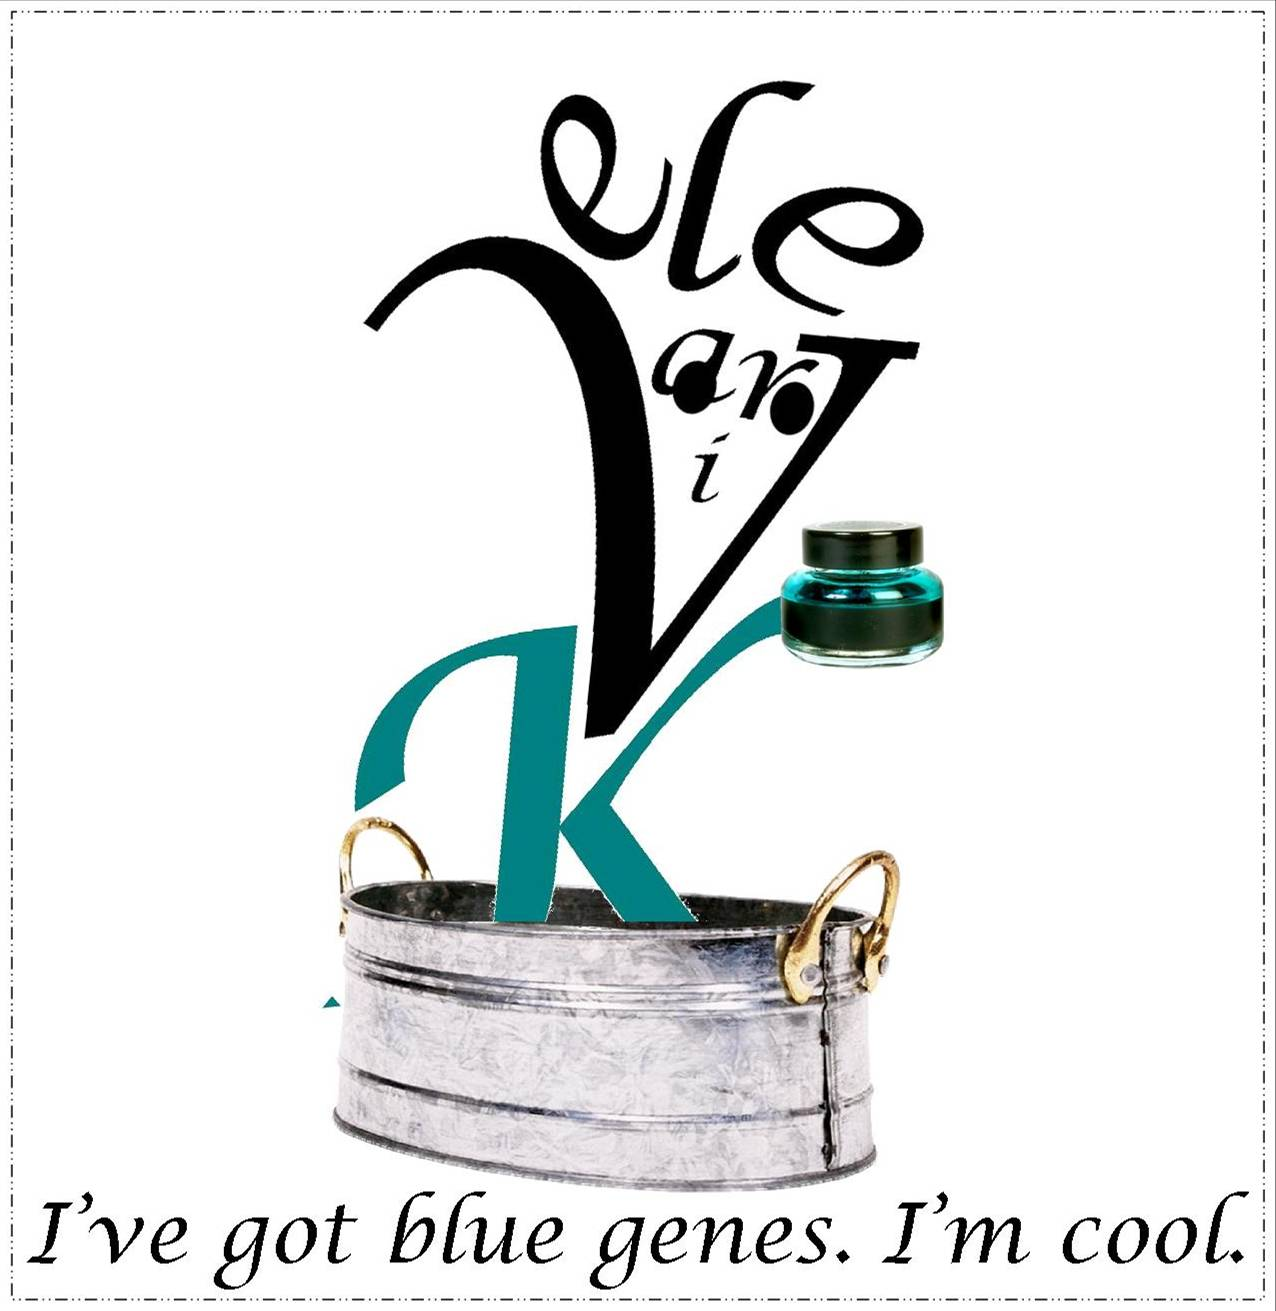 I've got blue genes I'm cool